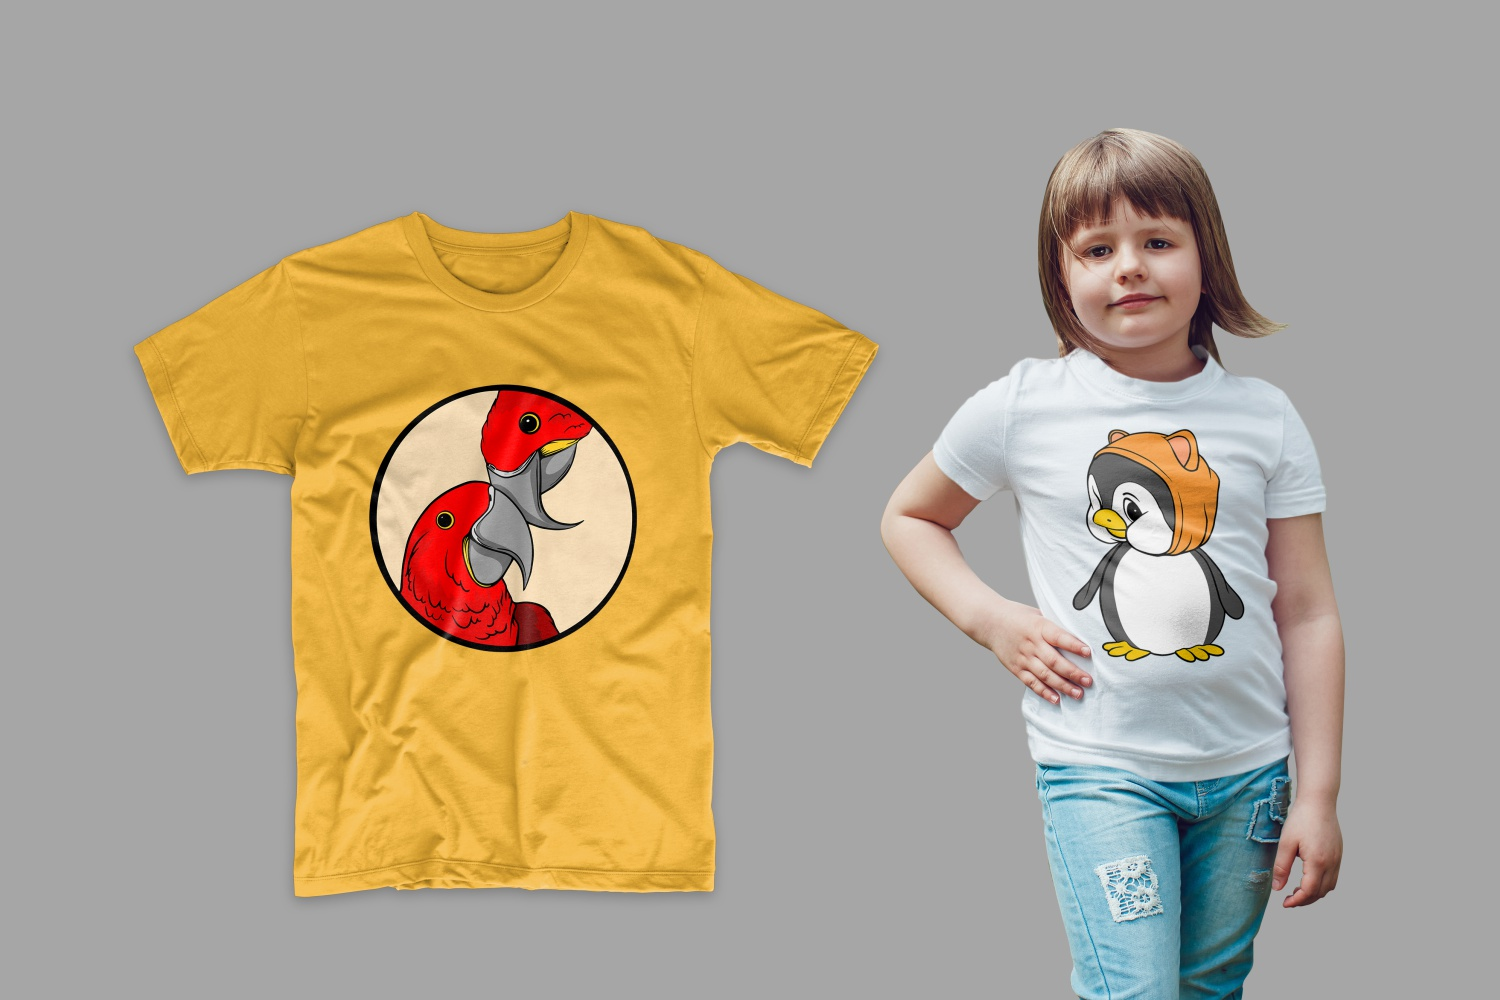 The T-shirt is yellow with two parrots and white with a penguin.